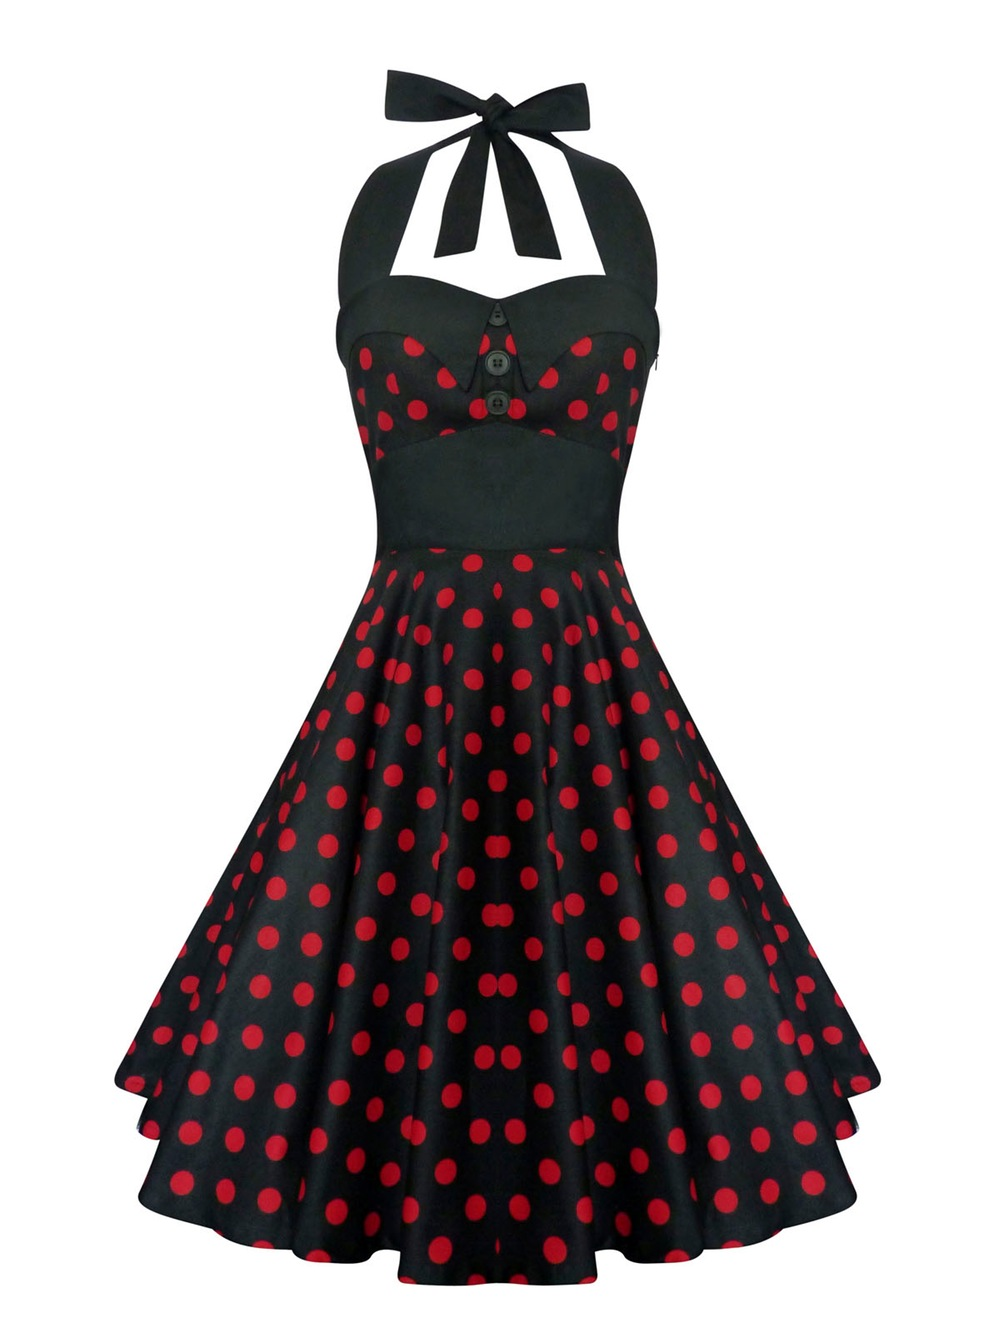 sassy 1950's red and black polka dotted dress